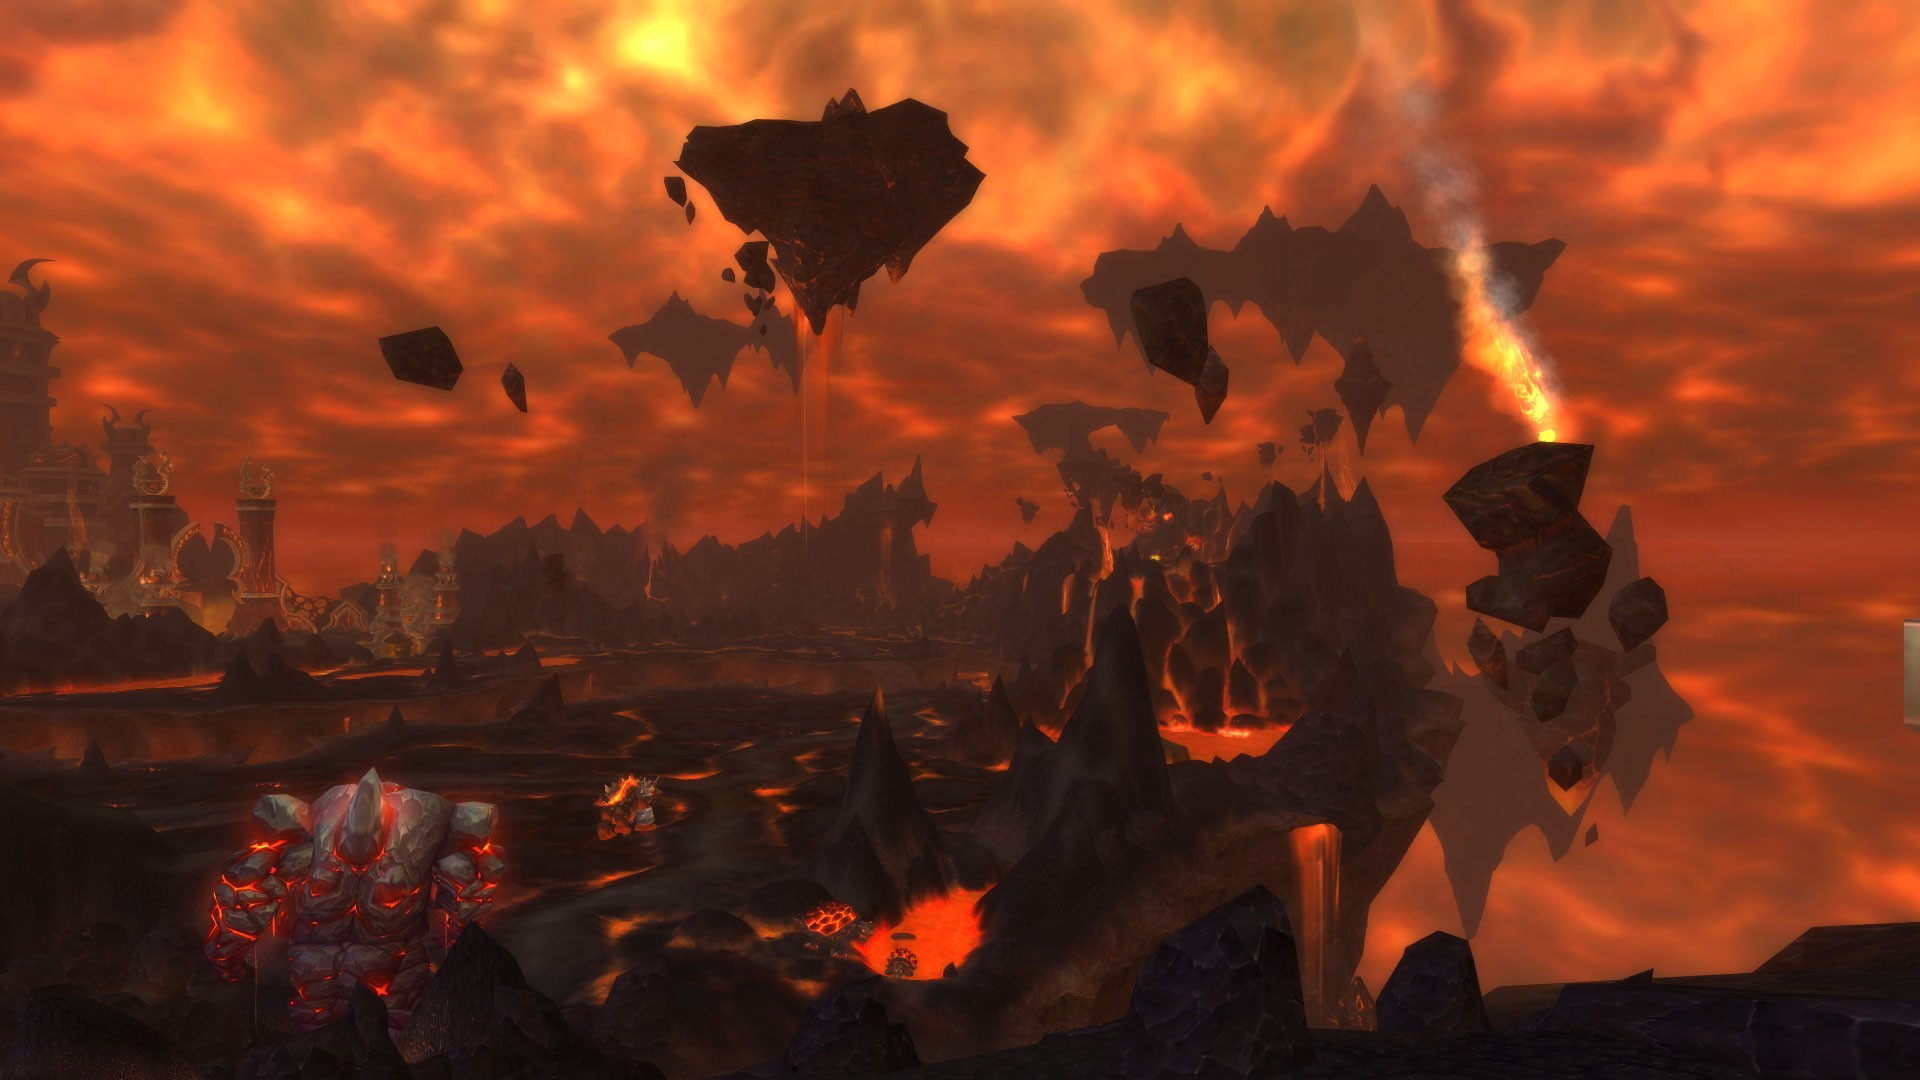 World of Warcraft - Fire lands